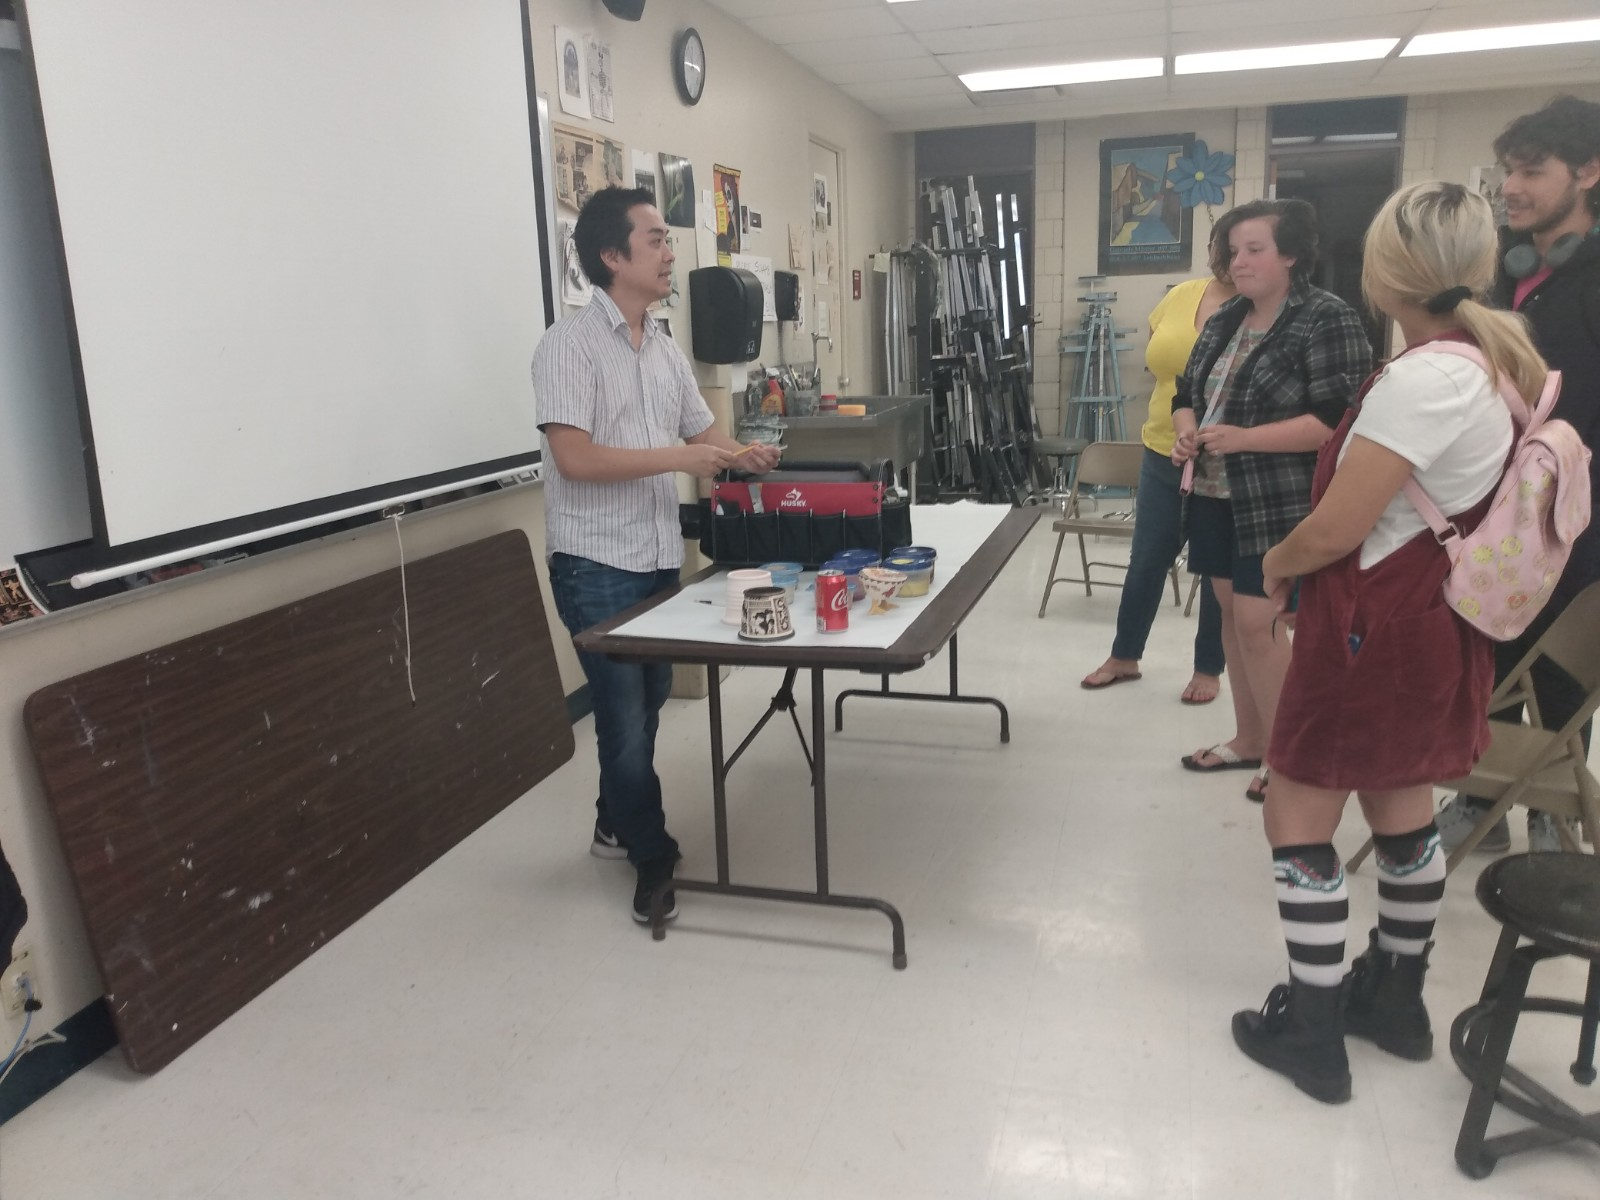 people are standing as a man at a table presents his art